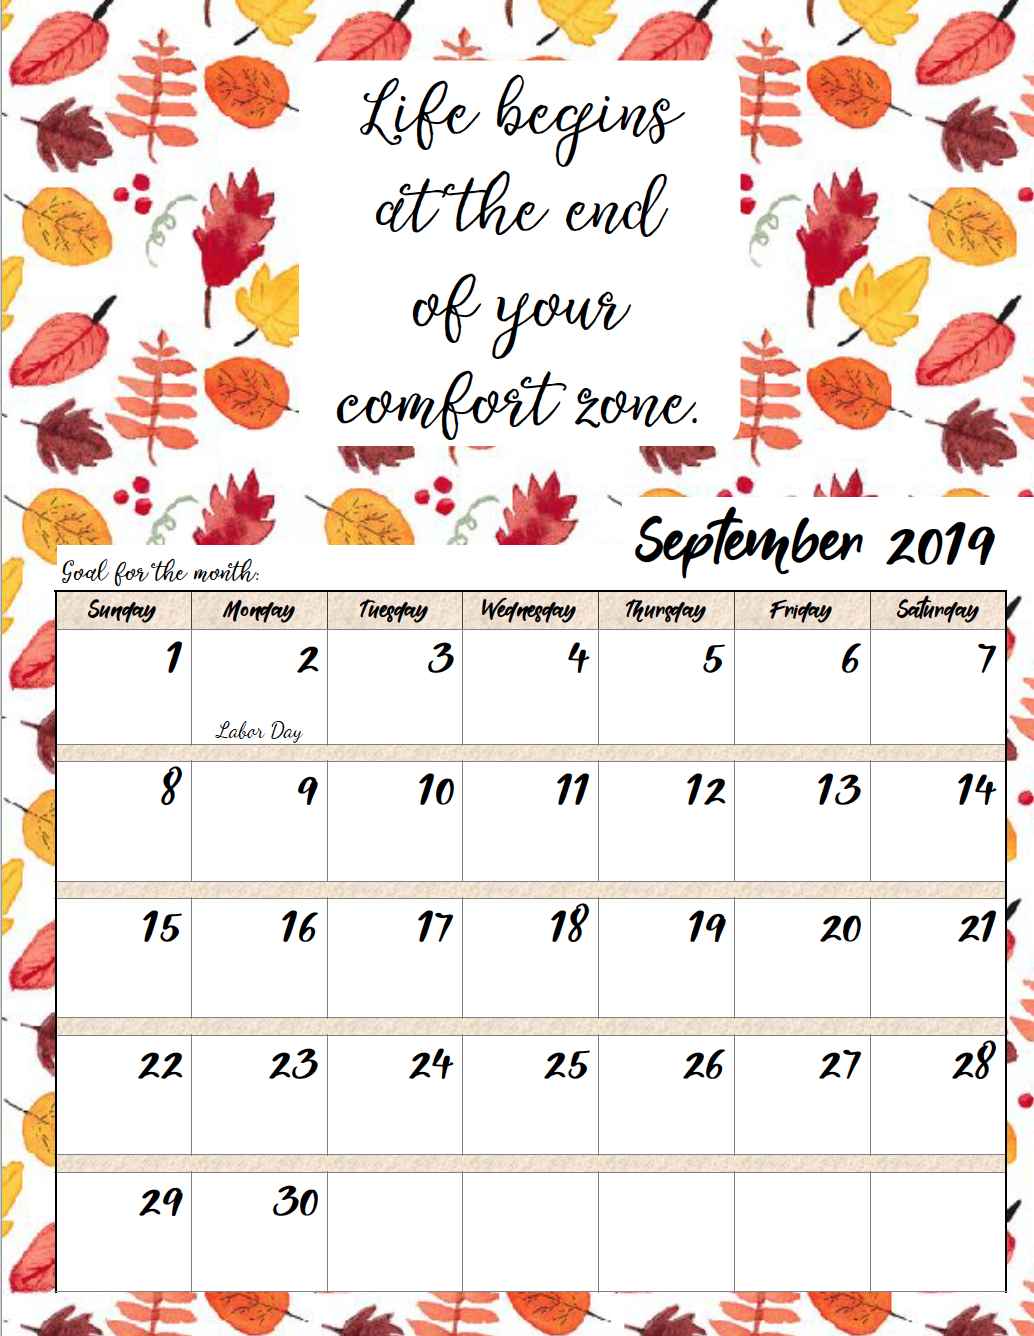 September. FREE Printable 2019 Monthly Motivational Calendars. Space for setting goals, different motivational quote each month, holidays marked. #free #freeprintable #printable #calendar #motivation